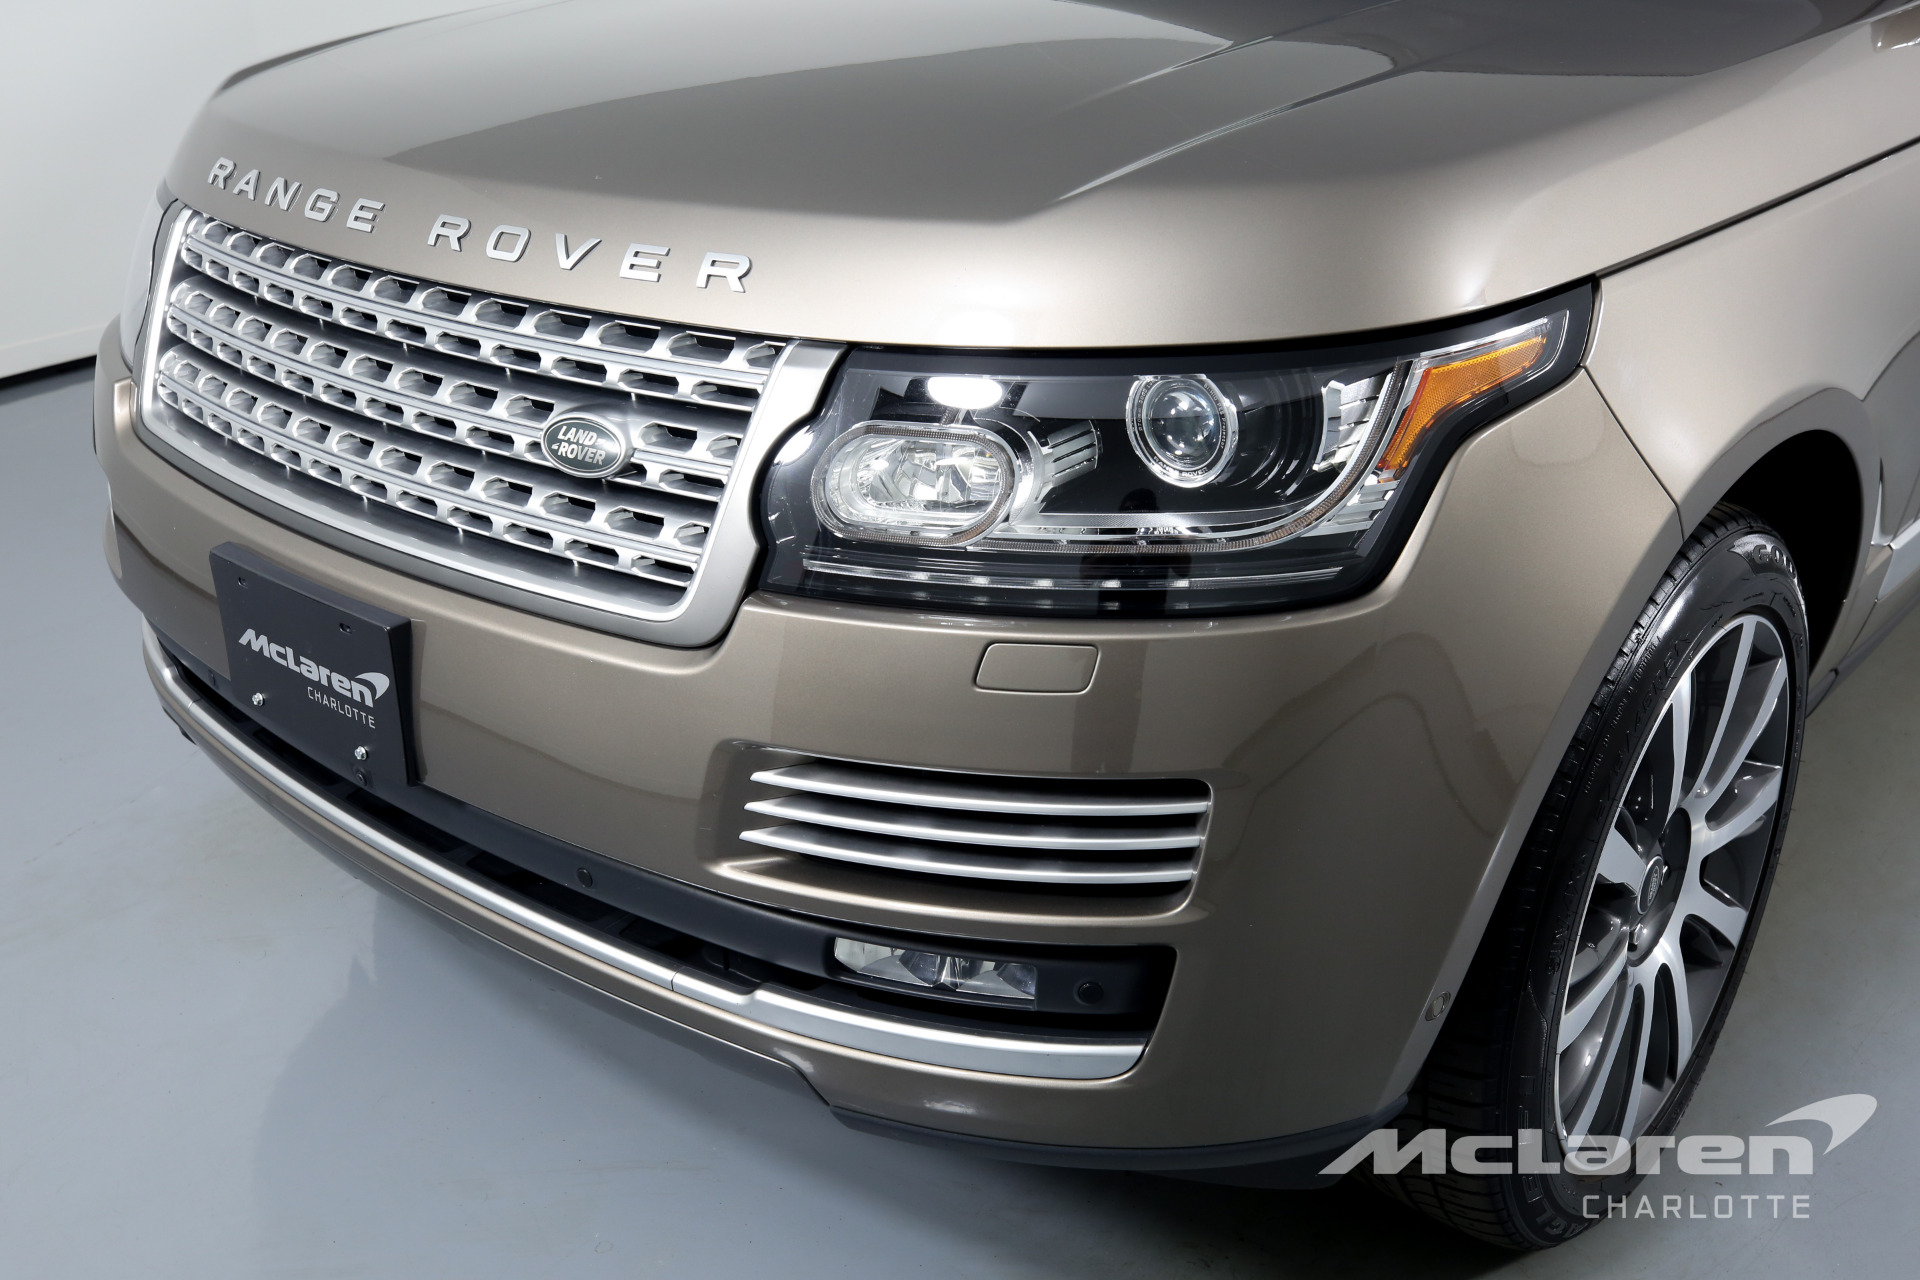 Used 2017 Land Rover Range Rover Autobiography   Charlotte, NC